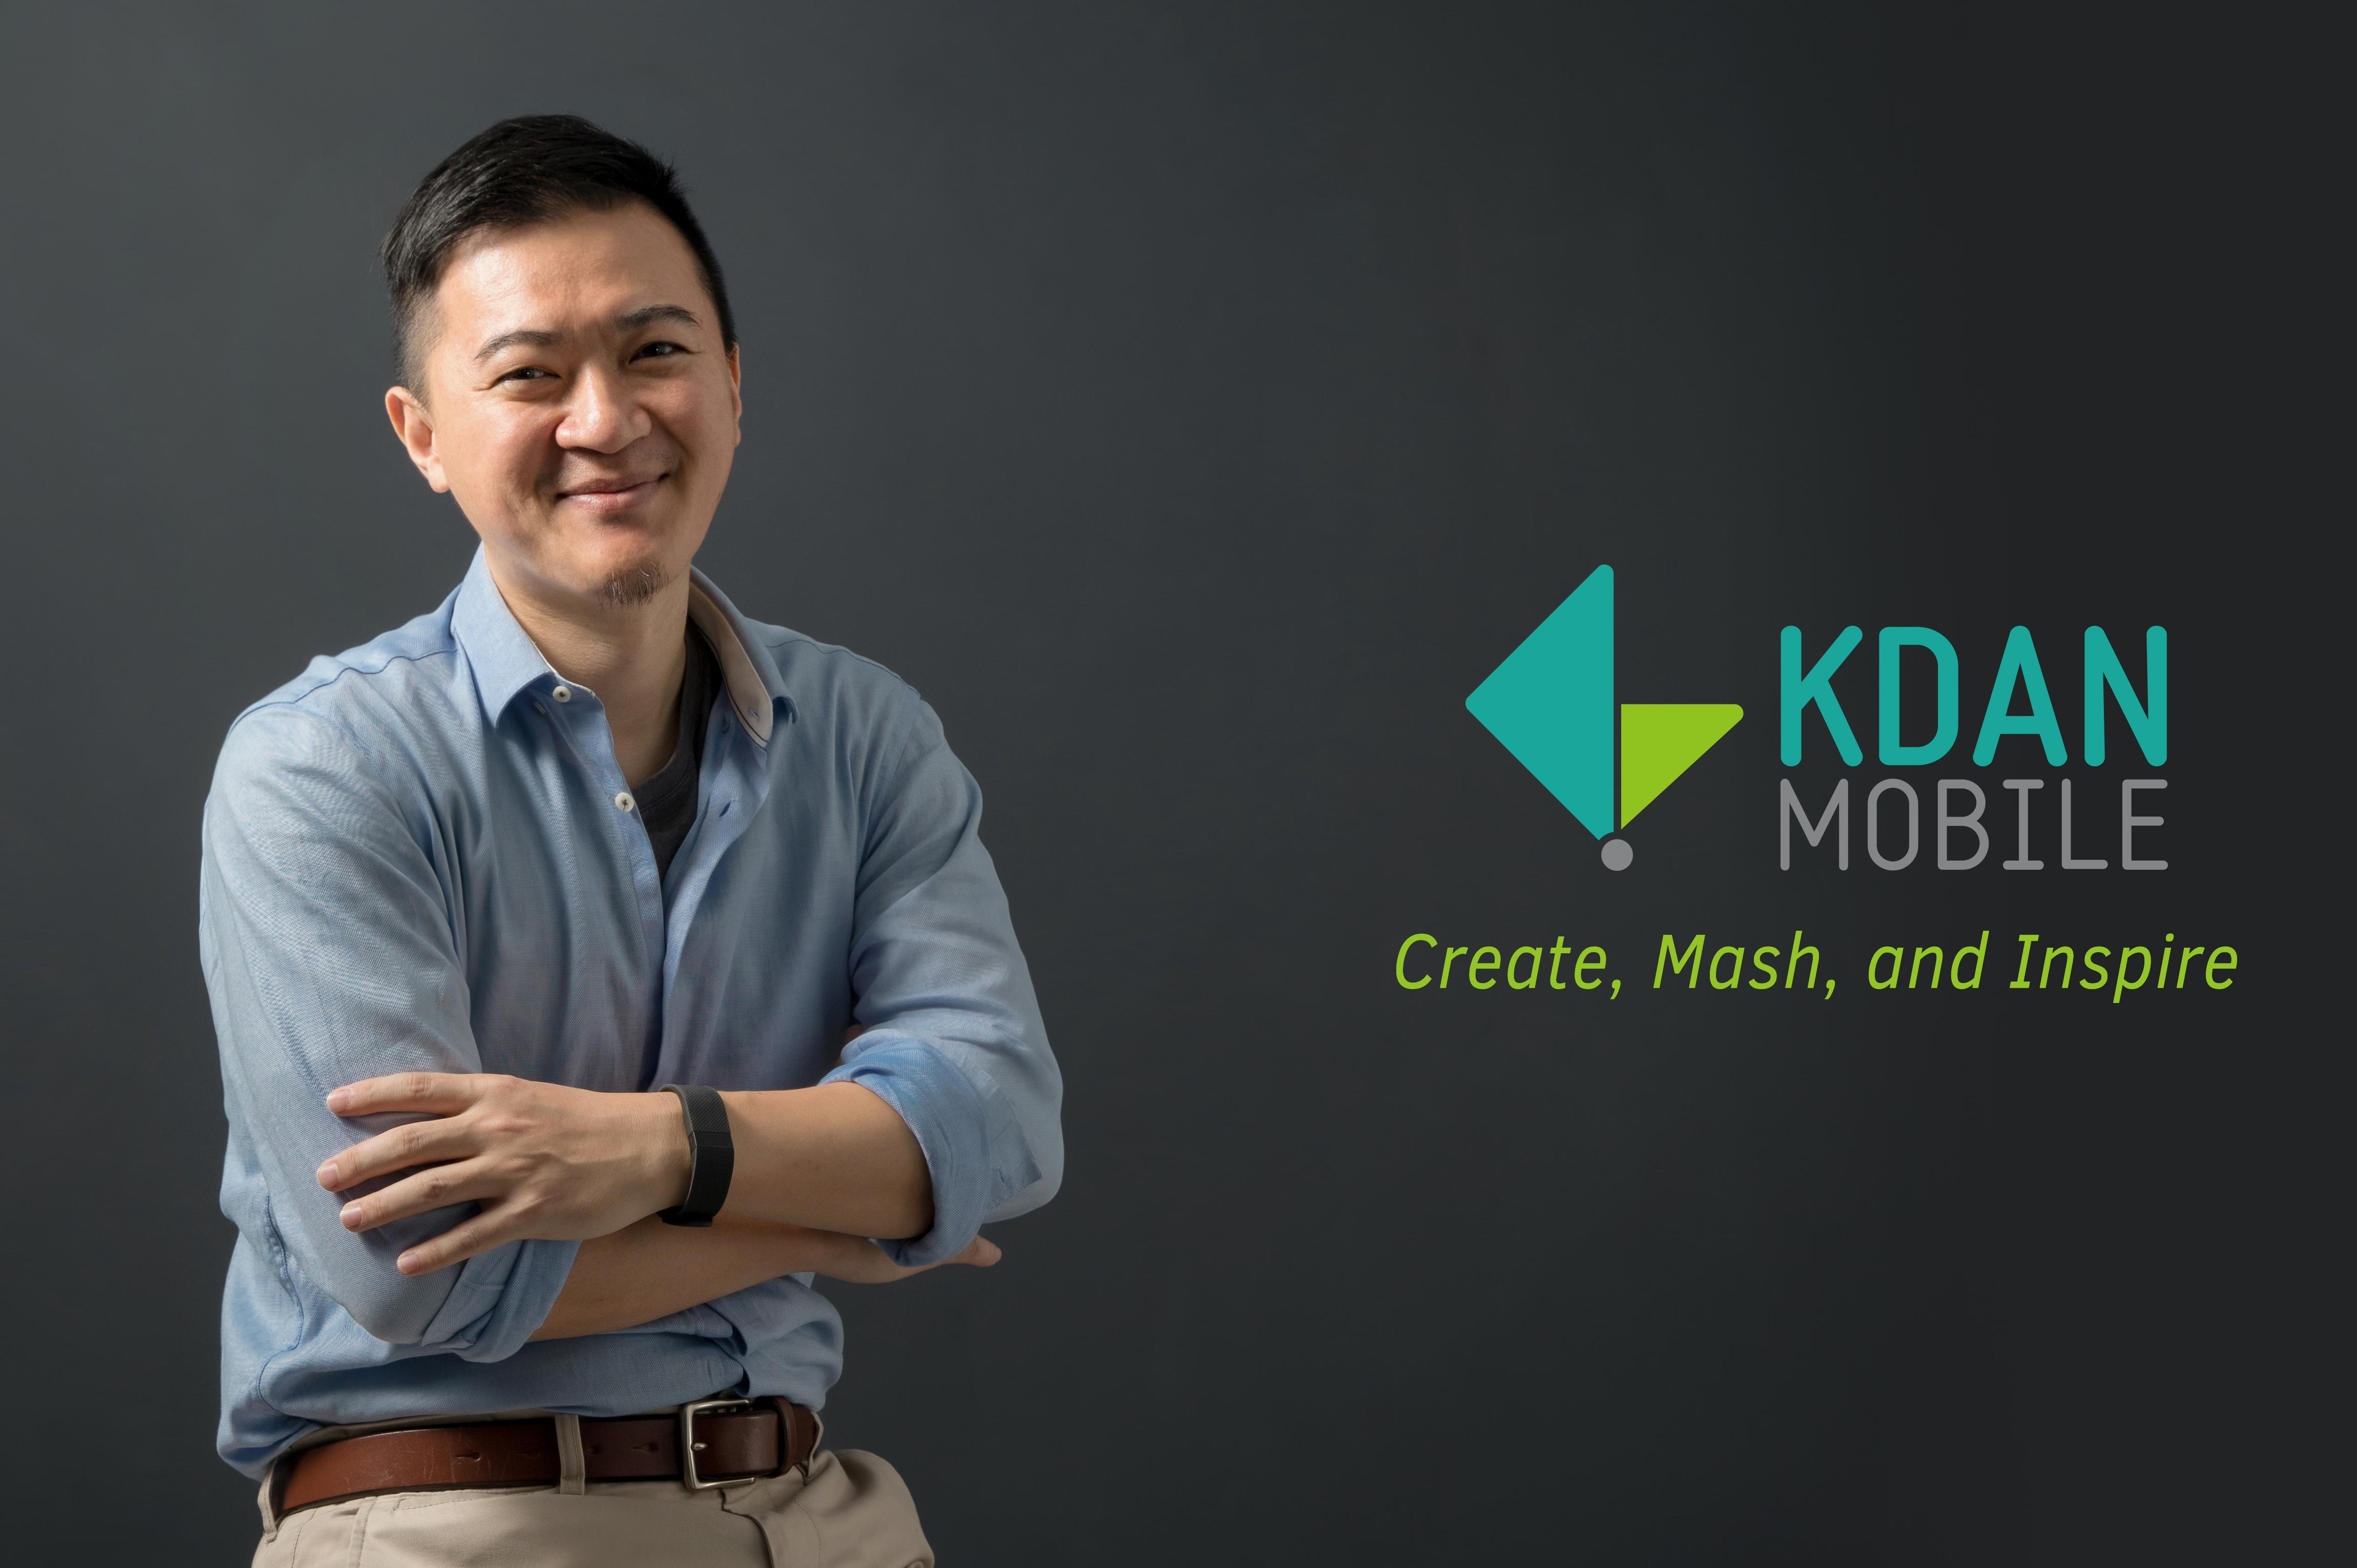 Taiwanese startup Kdan Mobile raises $5M Series A for its cloud-based content creation tools